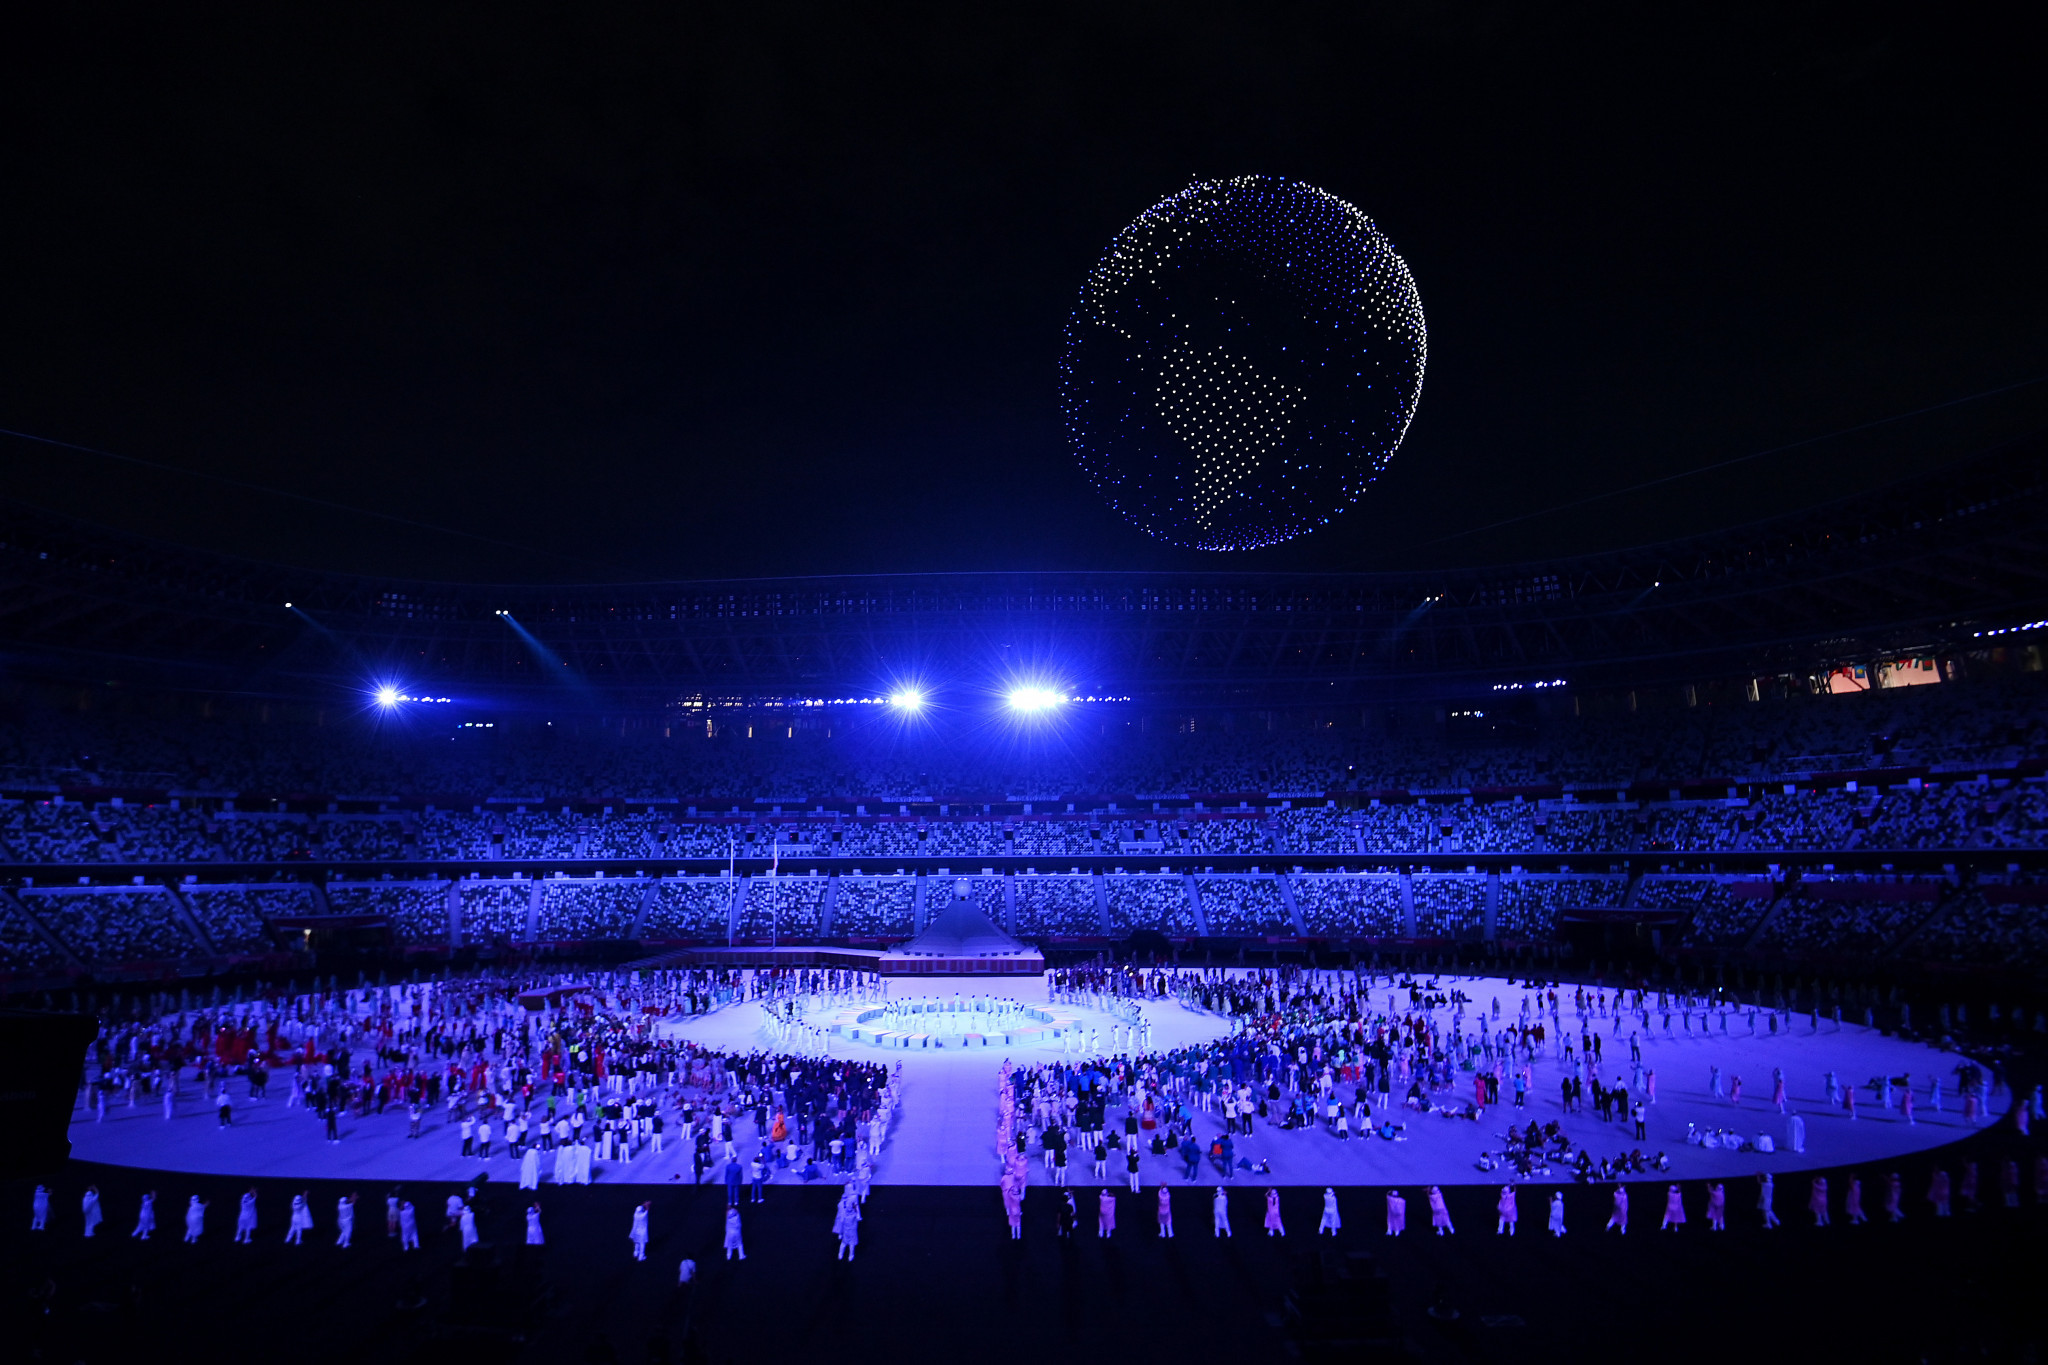 TOP sponsor Intel promises 3DAT platform to improve Olympic athletics broadcasts following drones' starring role in Opening Ceremony